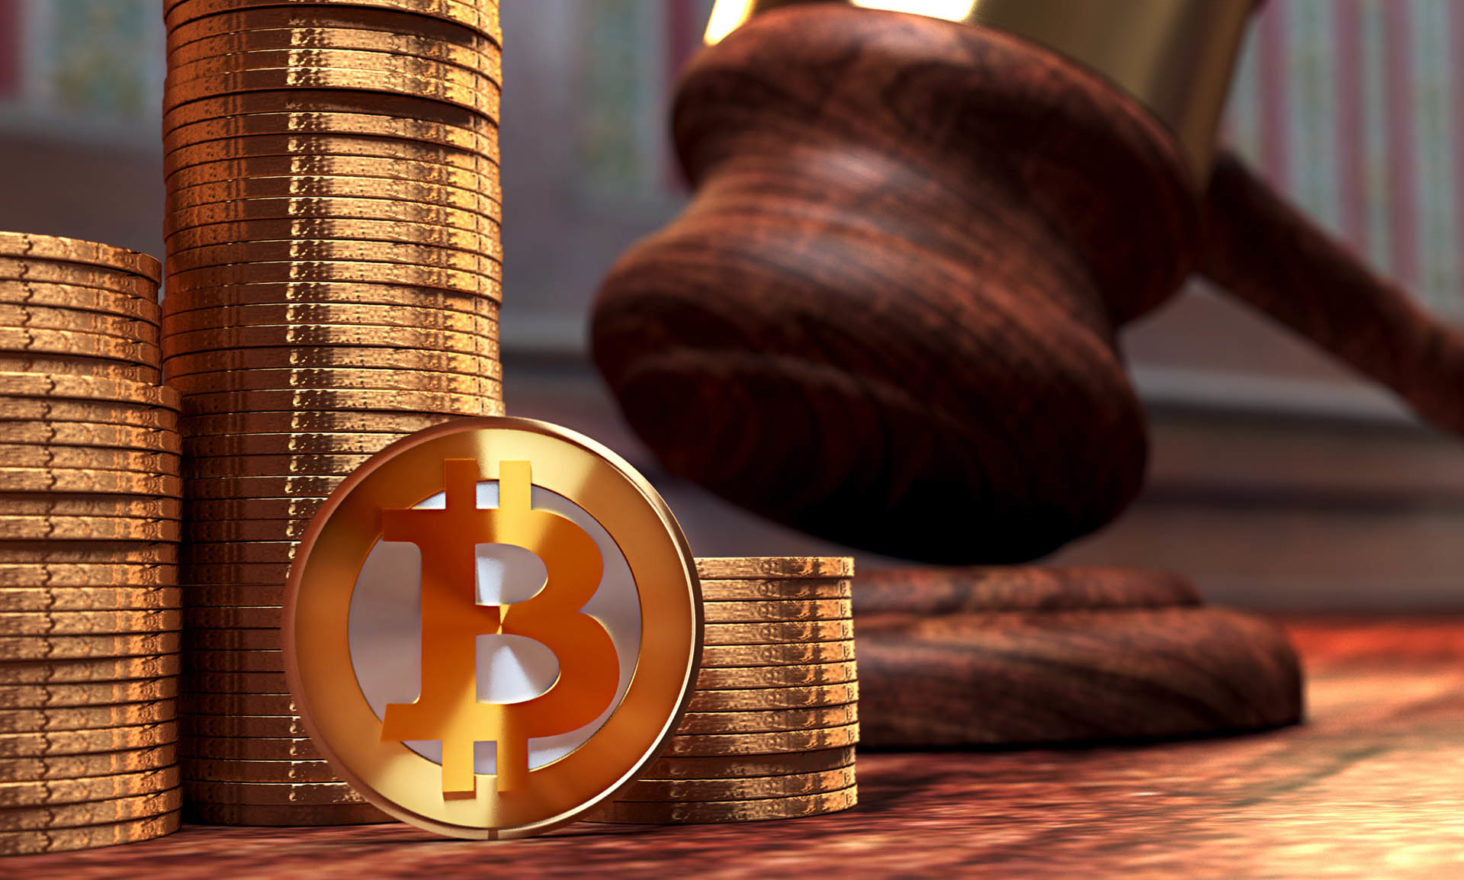 Nordic Law Firm Begin Accepting Bitcoin Payments For Legal Services